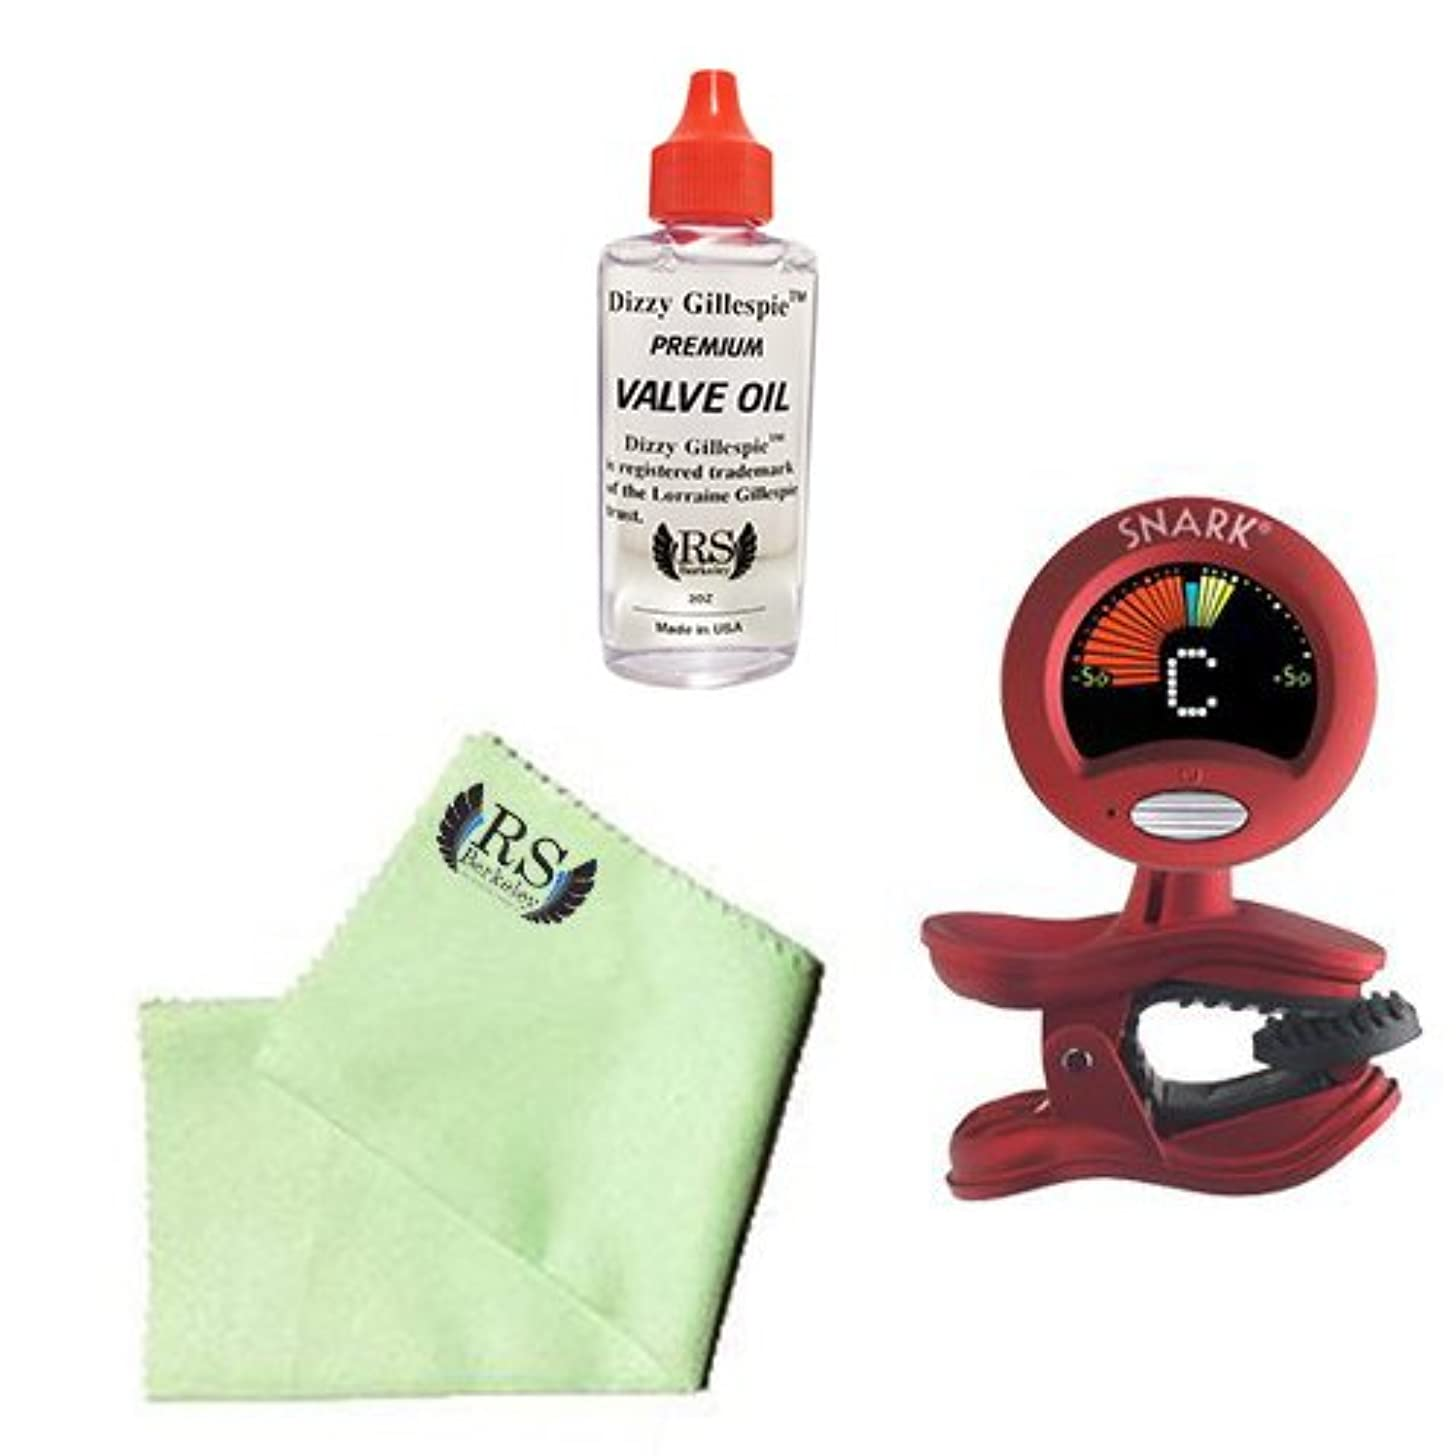 Euphonium Tuner Pack - Snark SN2 All Instrument Tuner/Metronome Includes Bonus RS Berkeley Euphonium Cleaning Cloth & Dizzy Gillespie Valve Oil